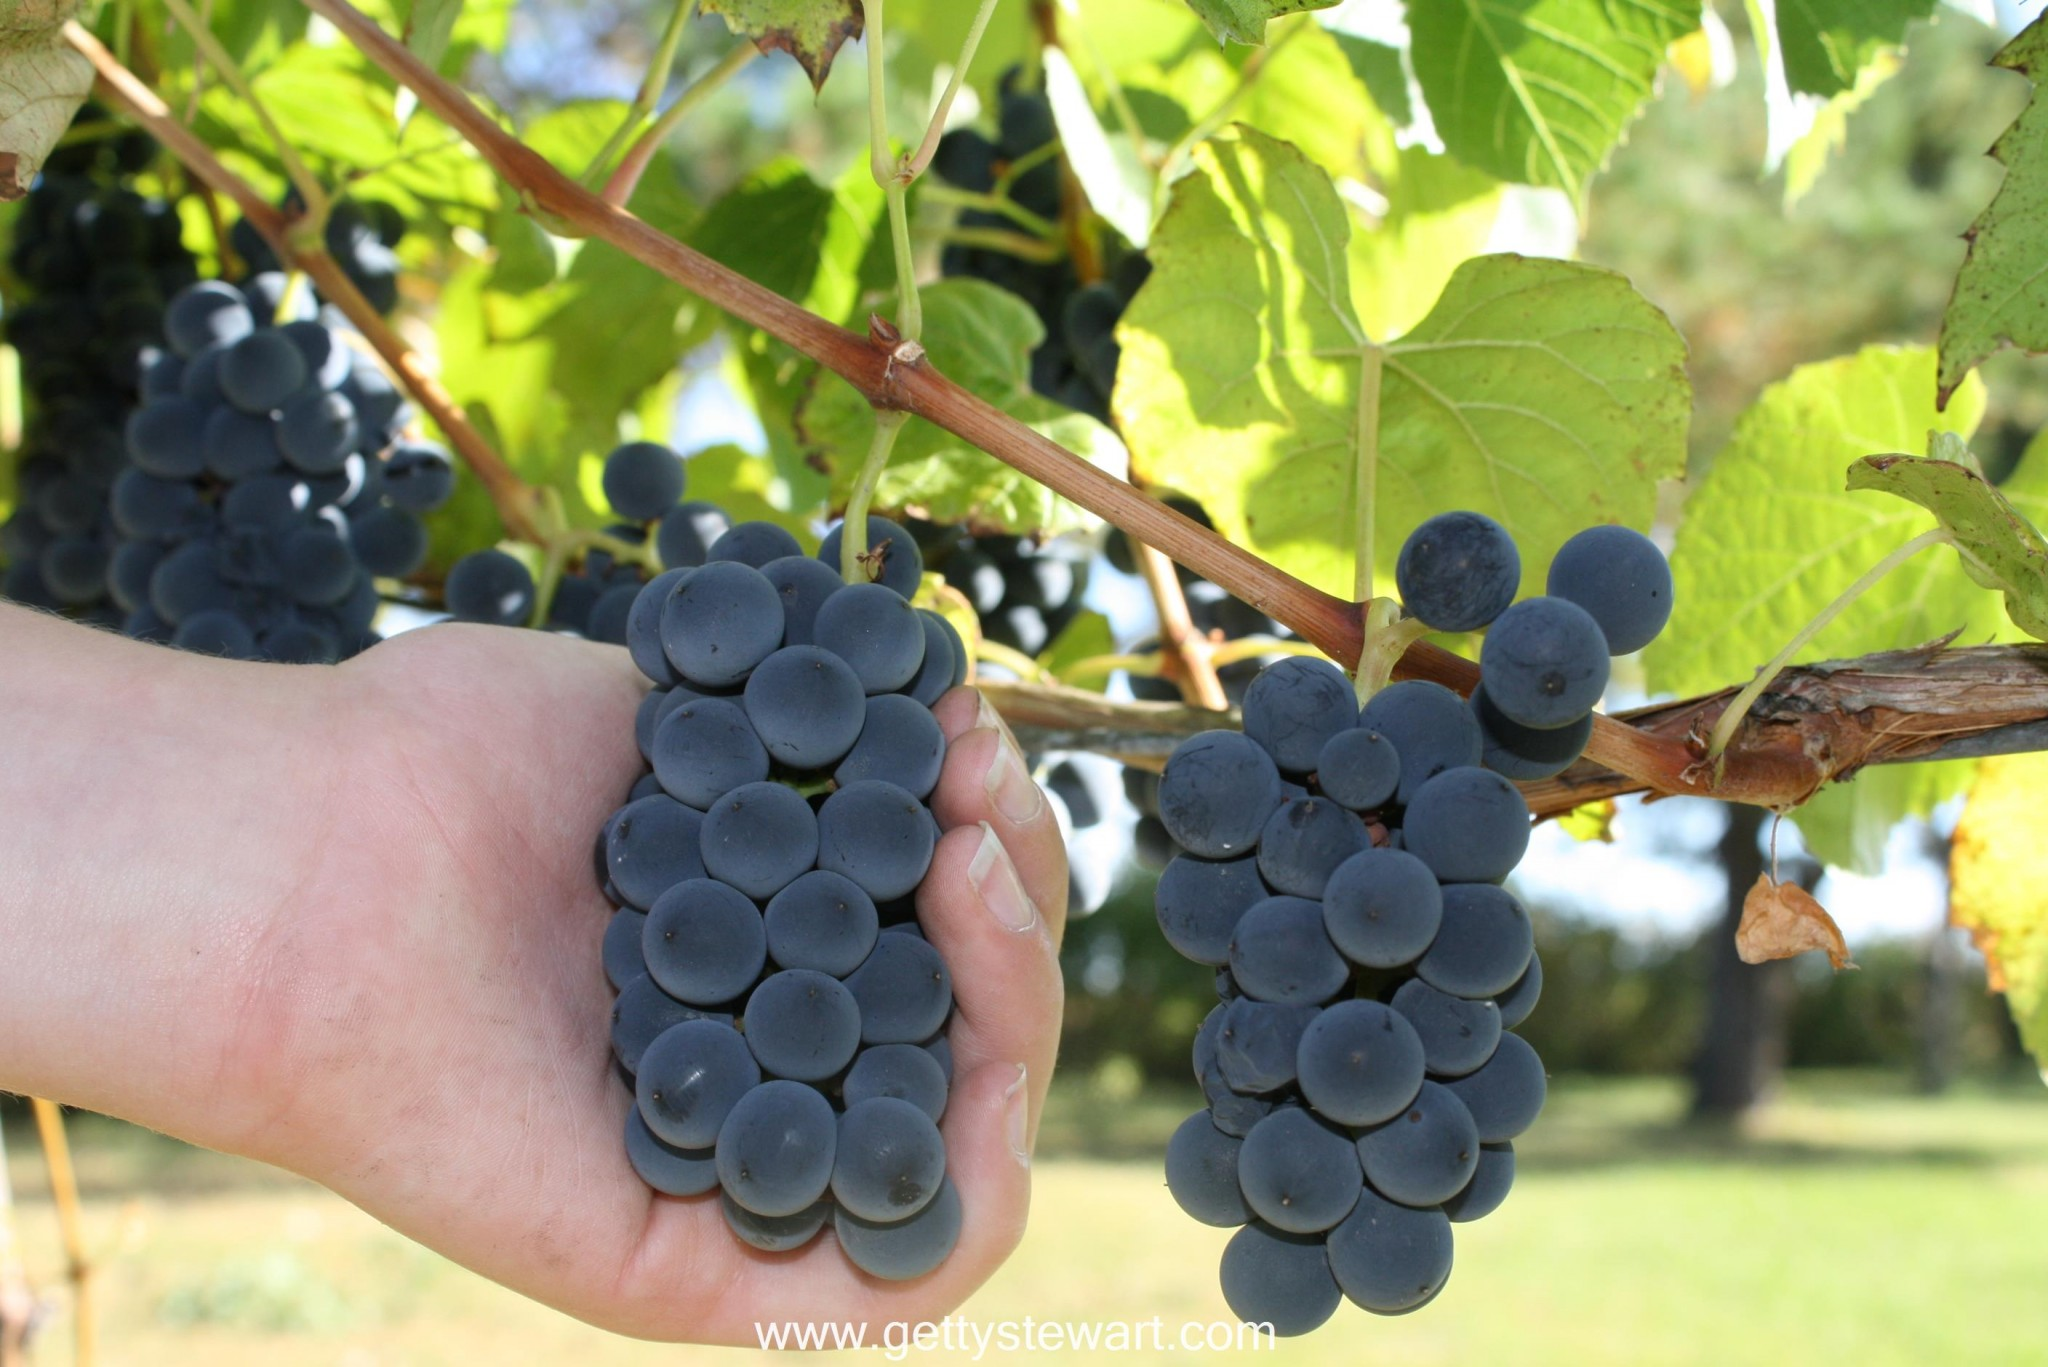 how and when to harvest grapes gettystewart com